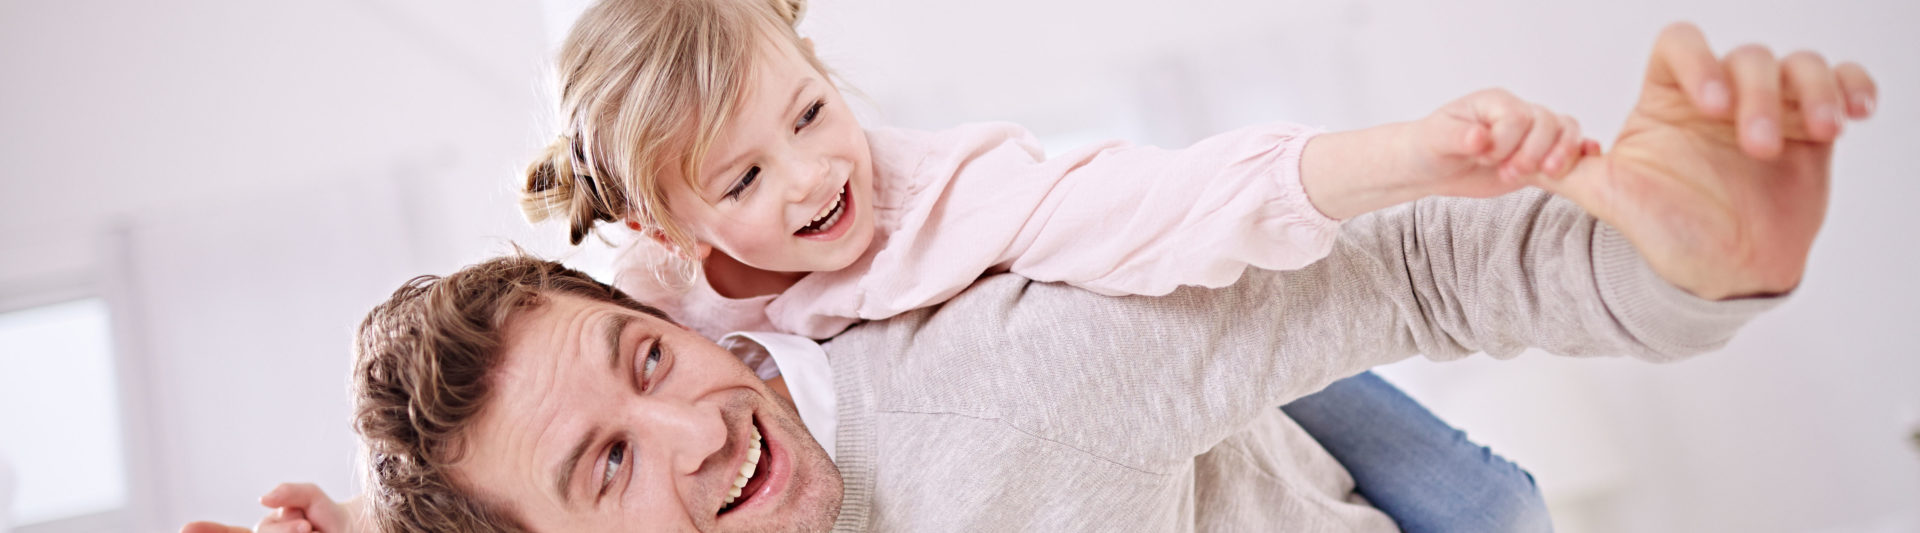 A father carries his small daughter on his back through the living room with his arms spread out wide.